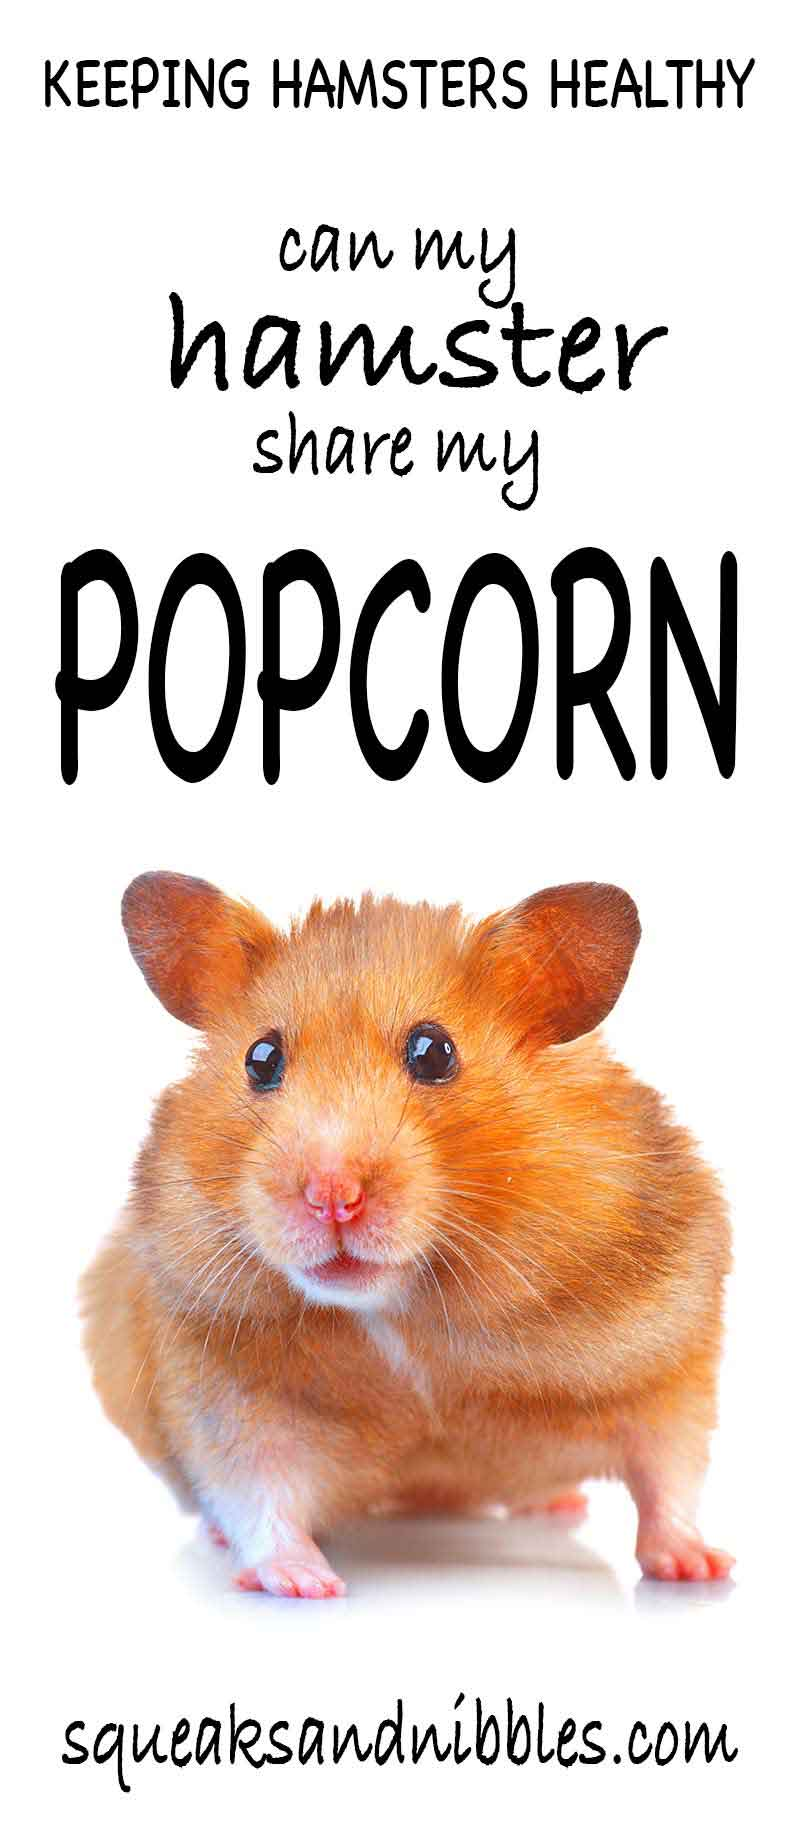 Can hamsters eat popcorn? Find out in our healthy eating guide for hamsters